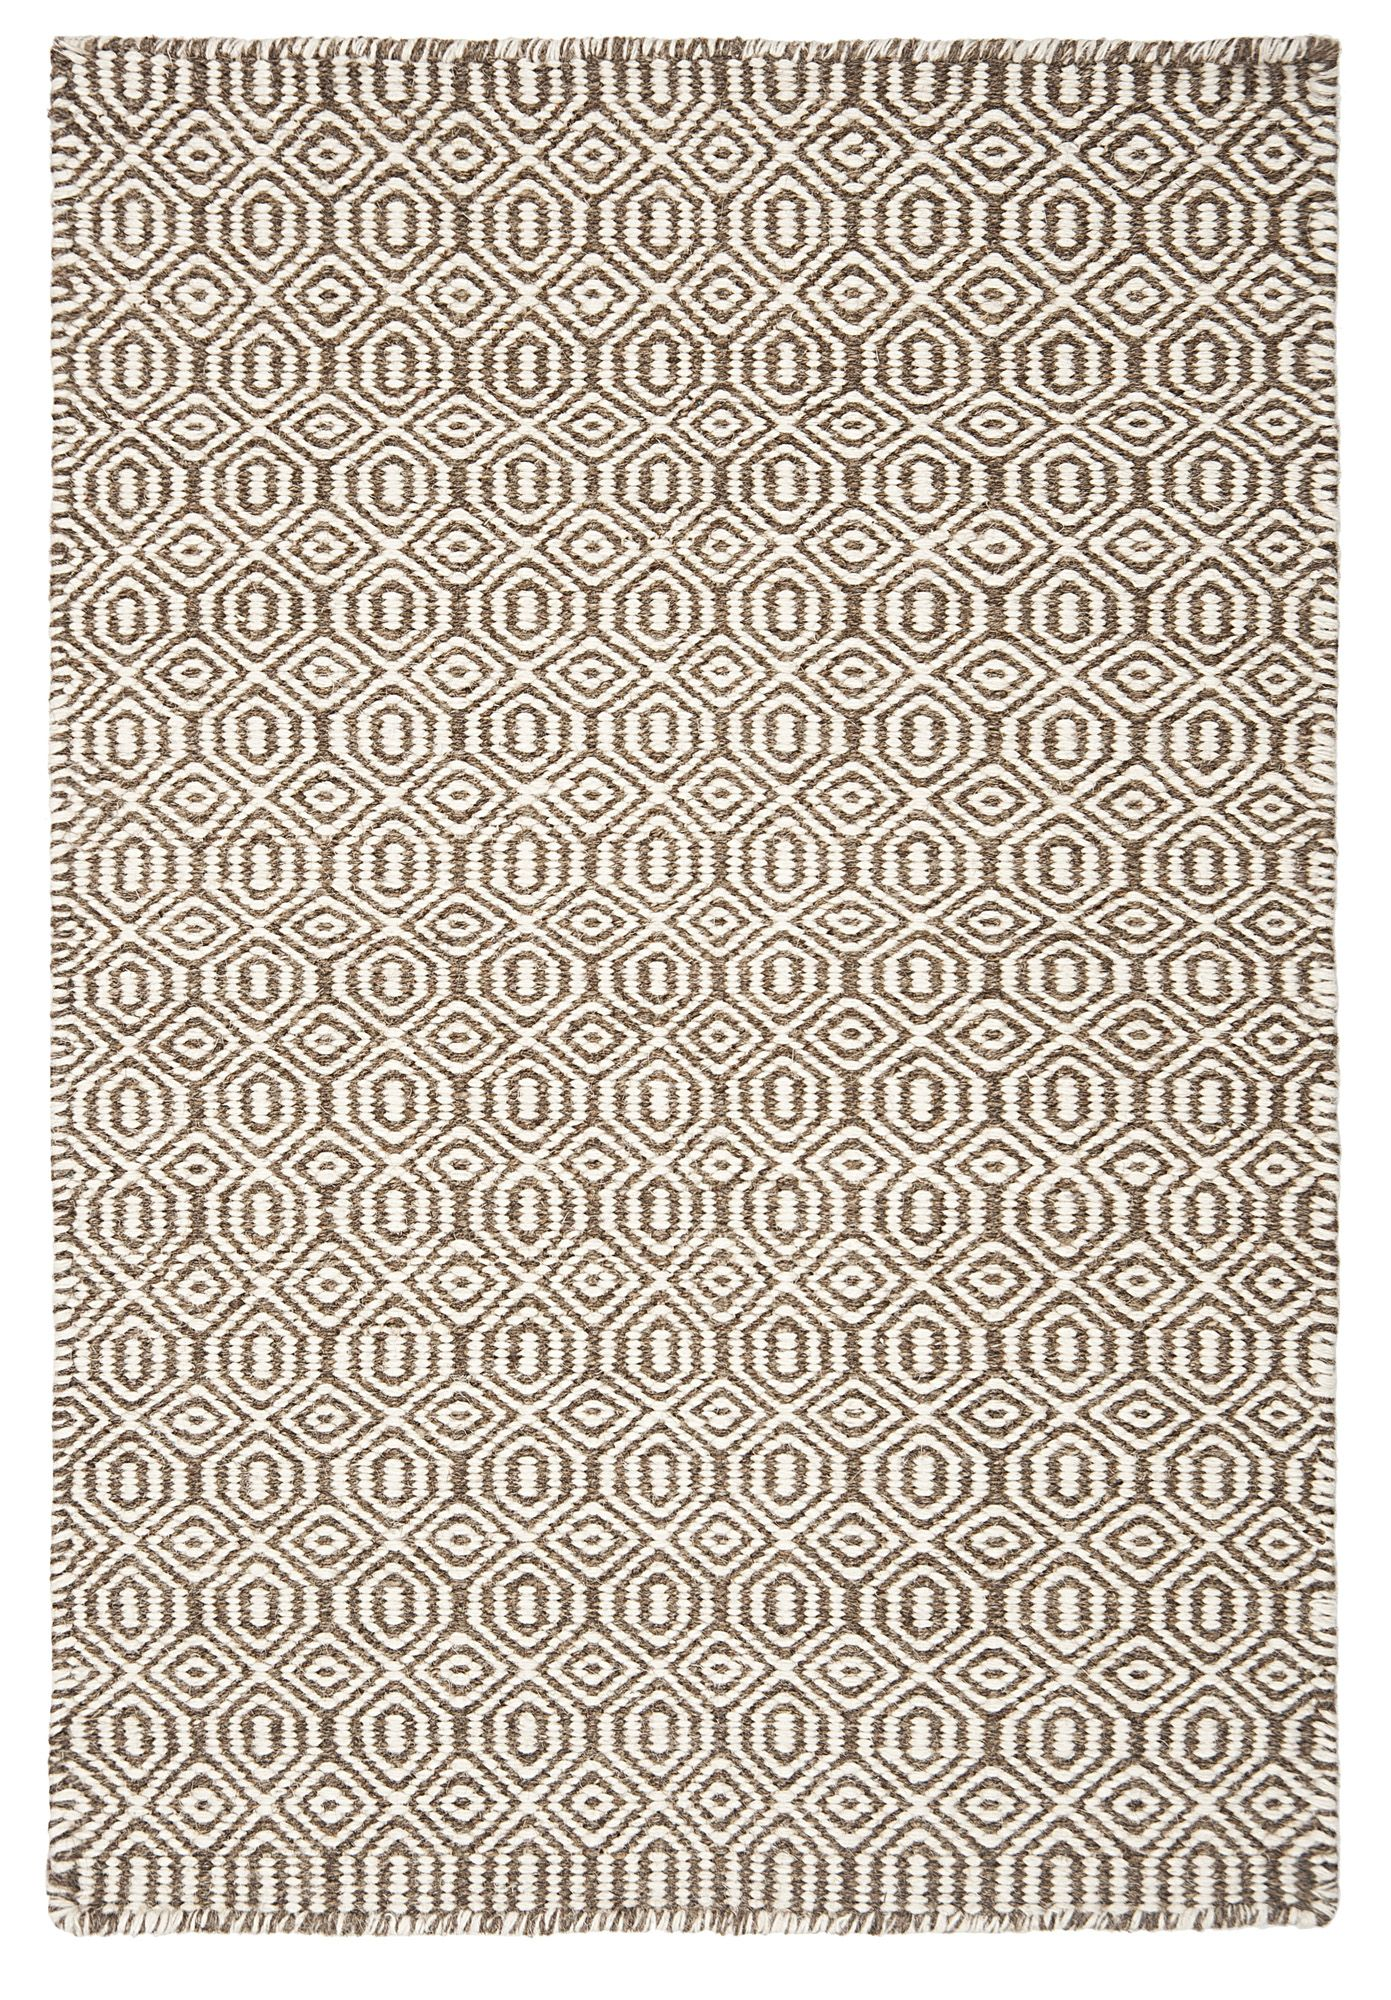 HookandLoom Cormo Natural Wool Rug (With images